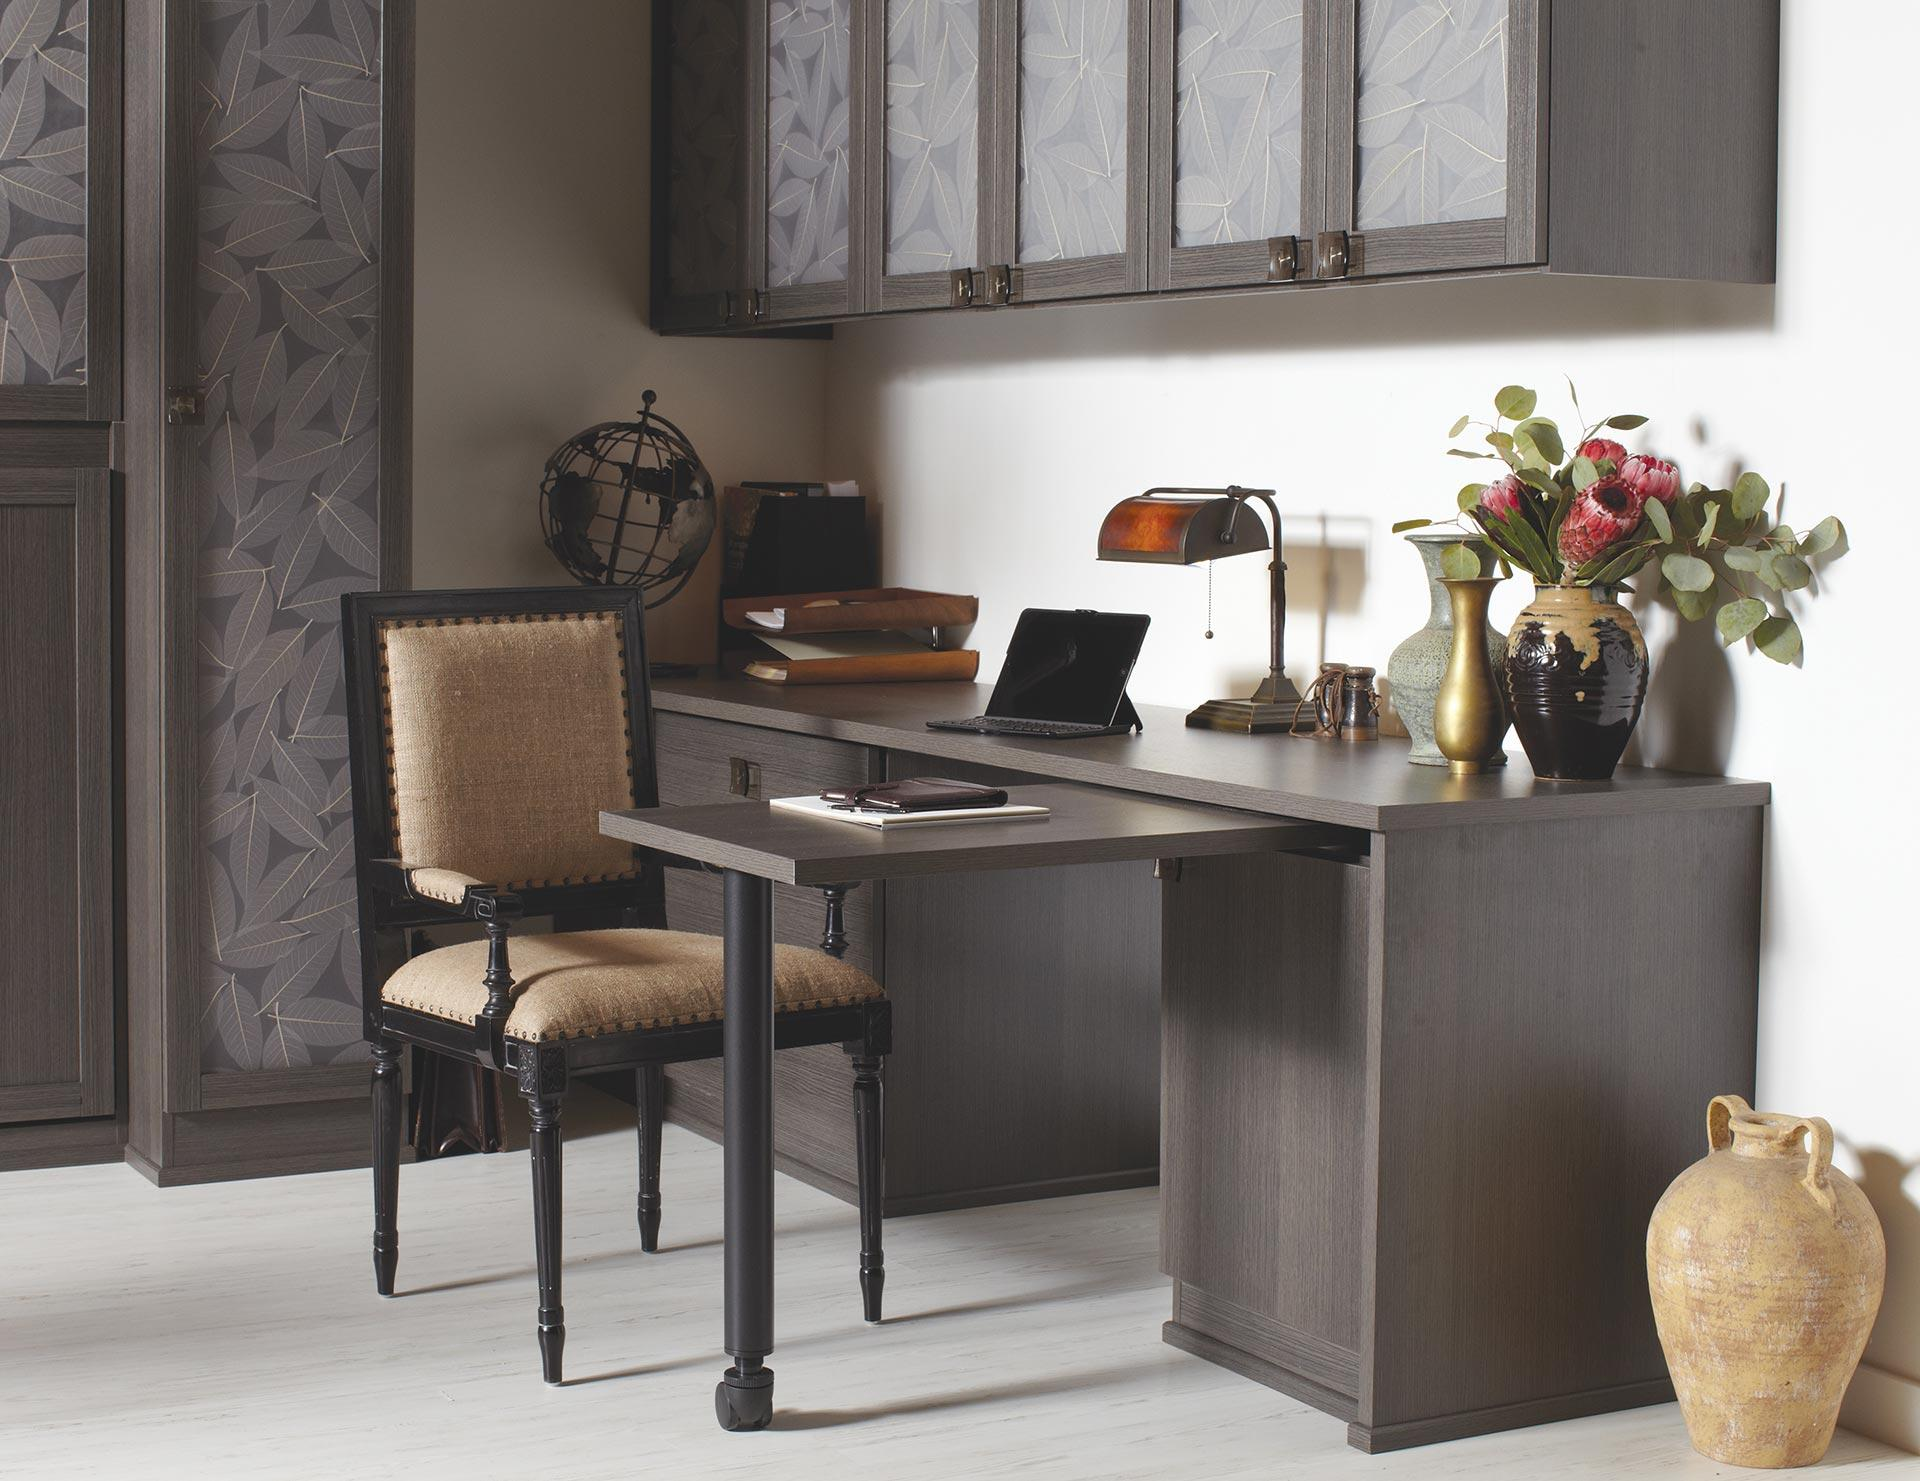 Desk For Office Design In California Closets Home Office Custom Storage Solutionssimon Convertible With Lago Milano Grey Finish Furniture Solutions u0026 Ideas By